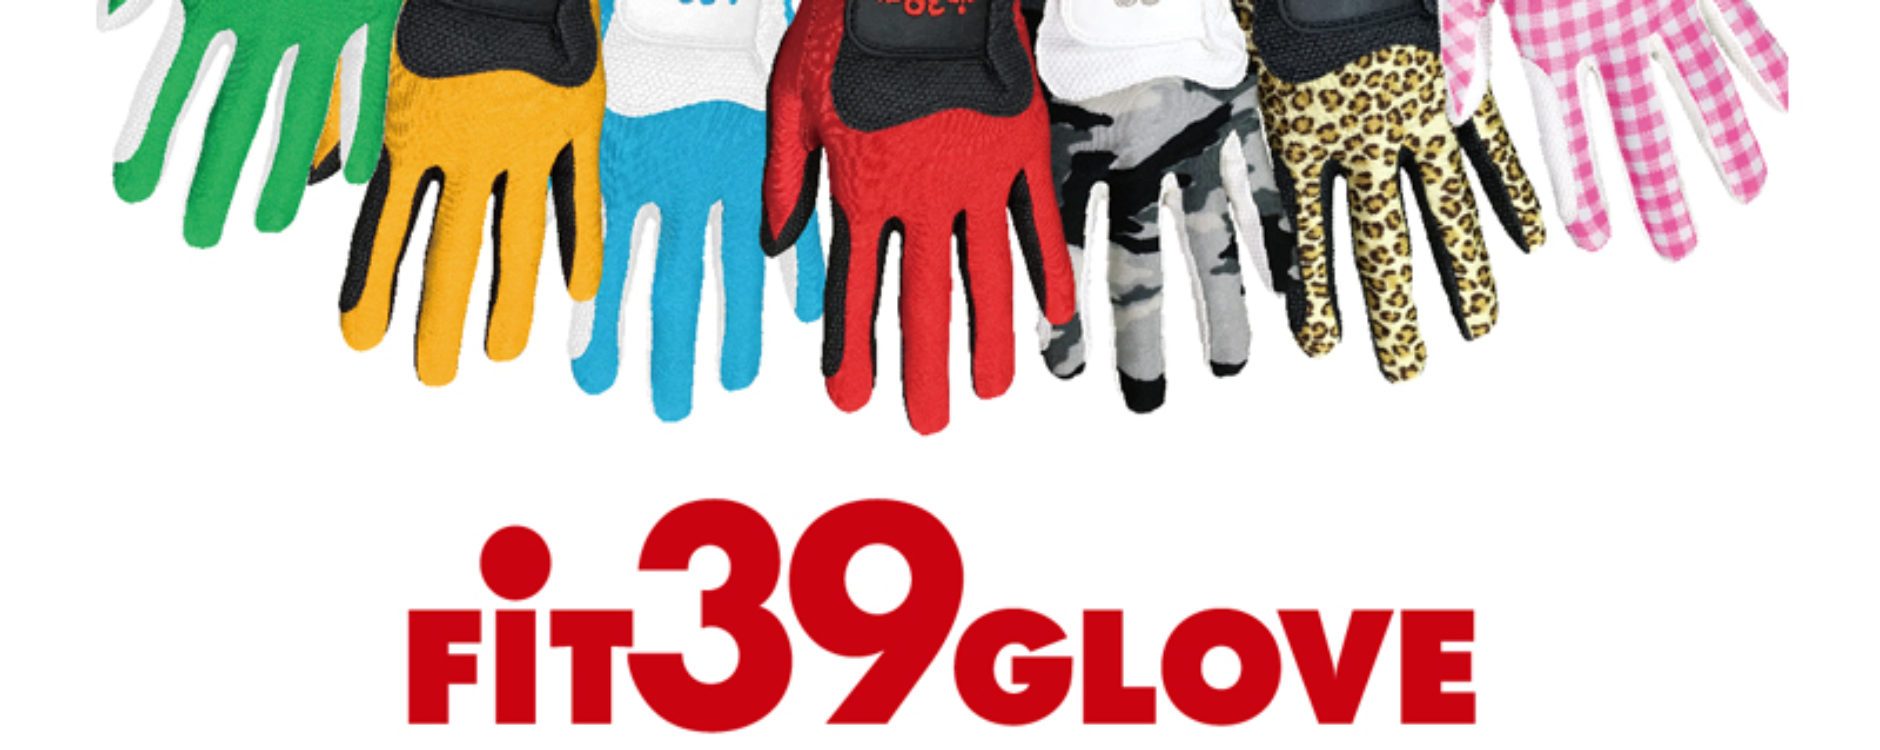 FIT 39 Golfhandschuh